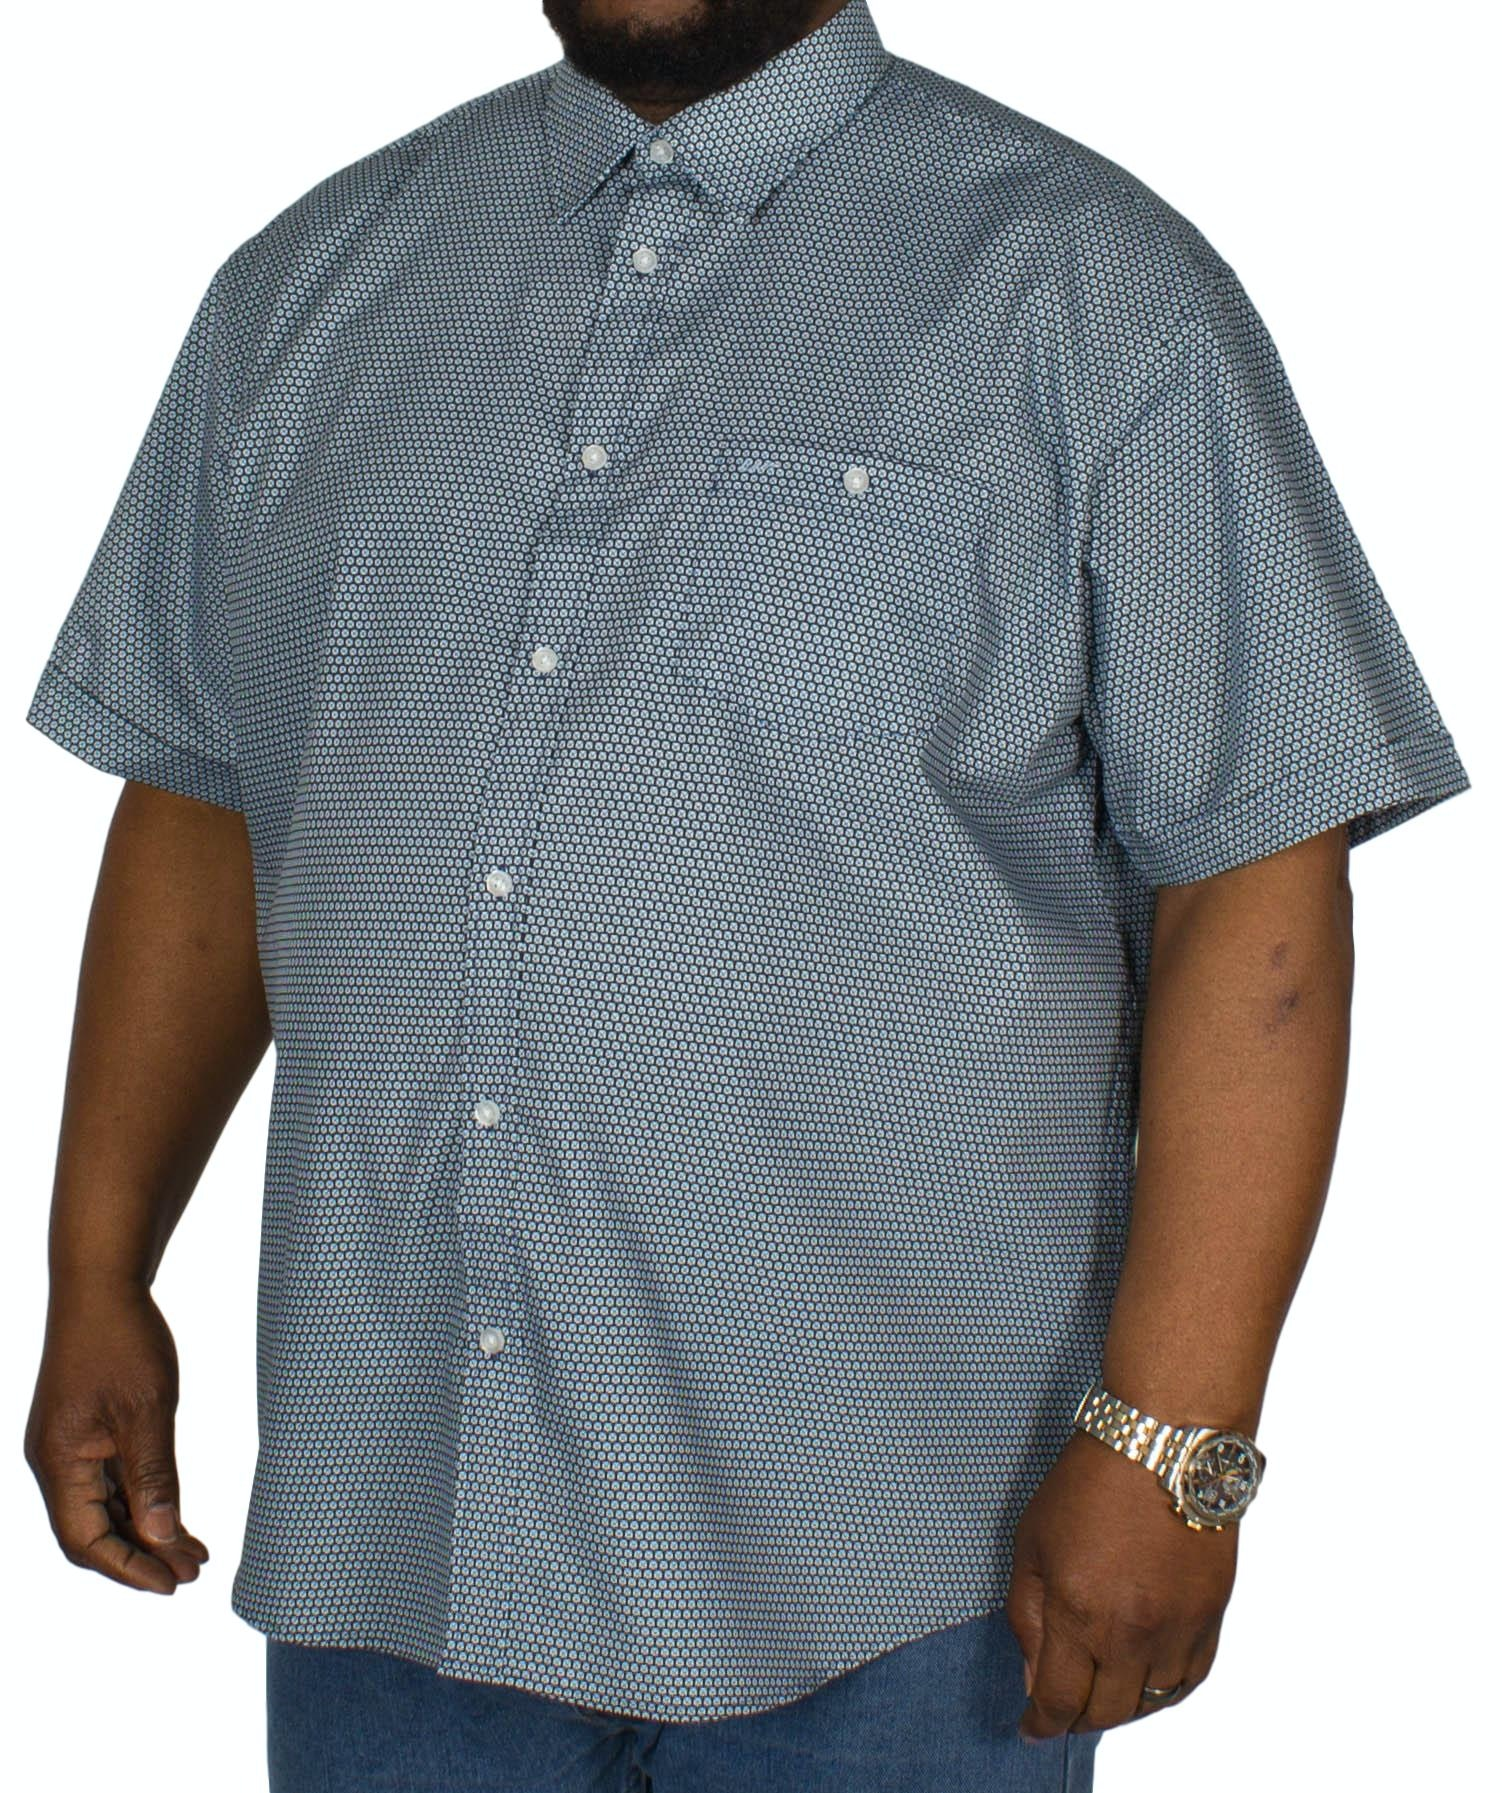 KAM Crosses Dobby Short Sleeve Shirt Teal